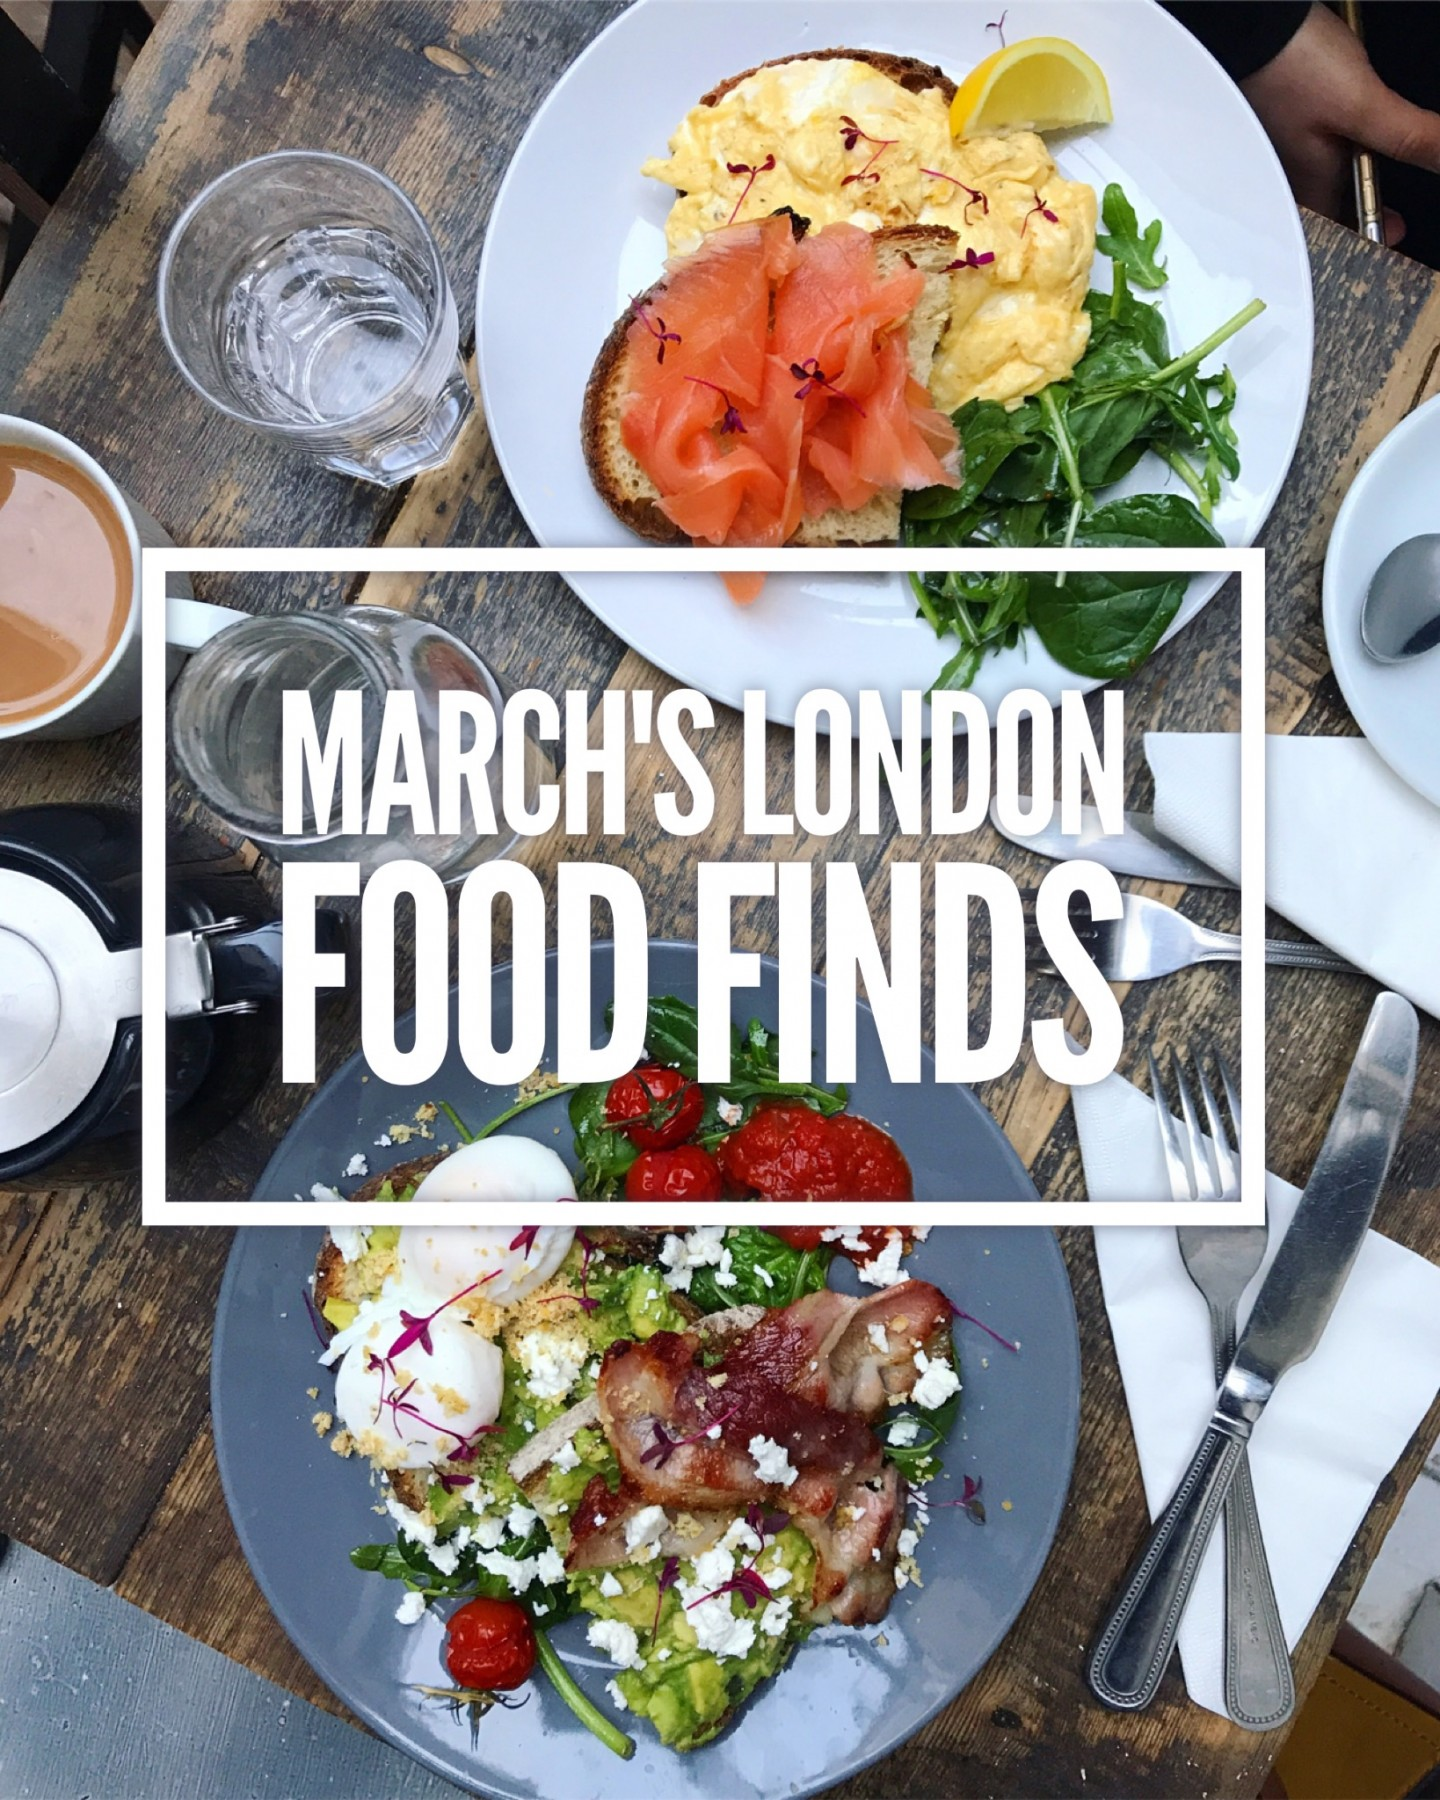 March's London Food Finds (2018)